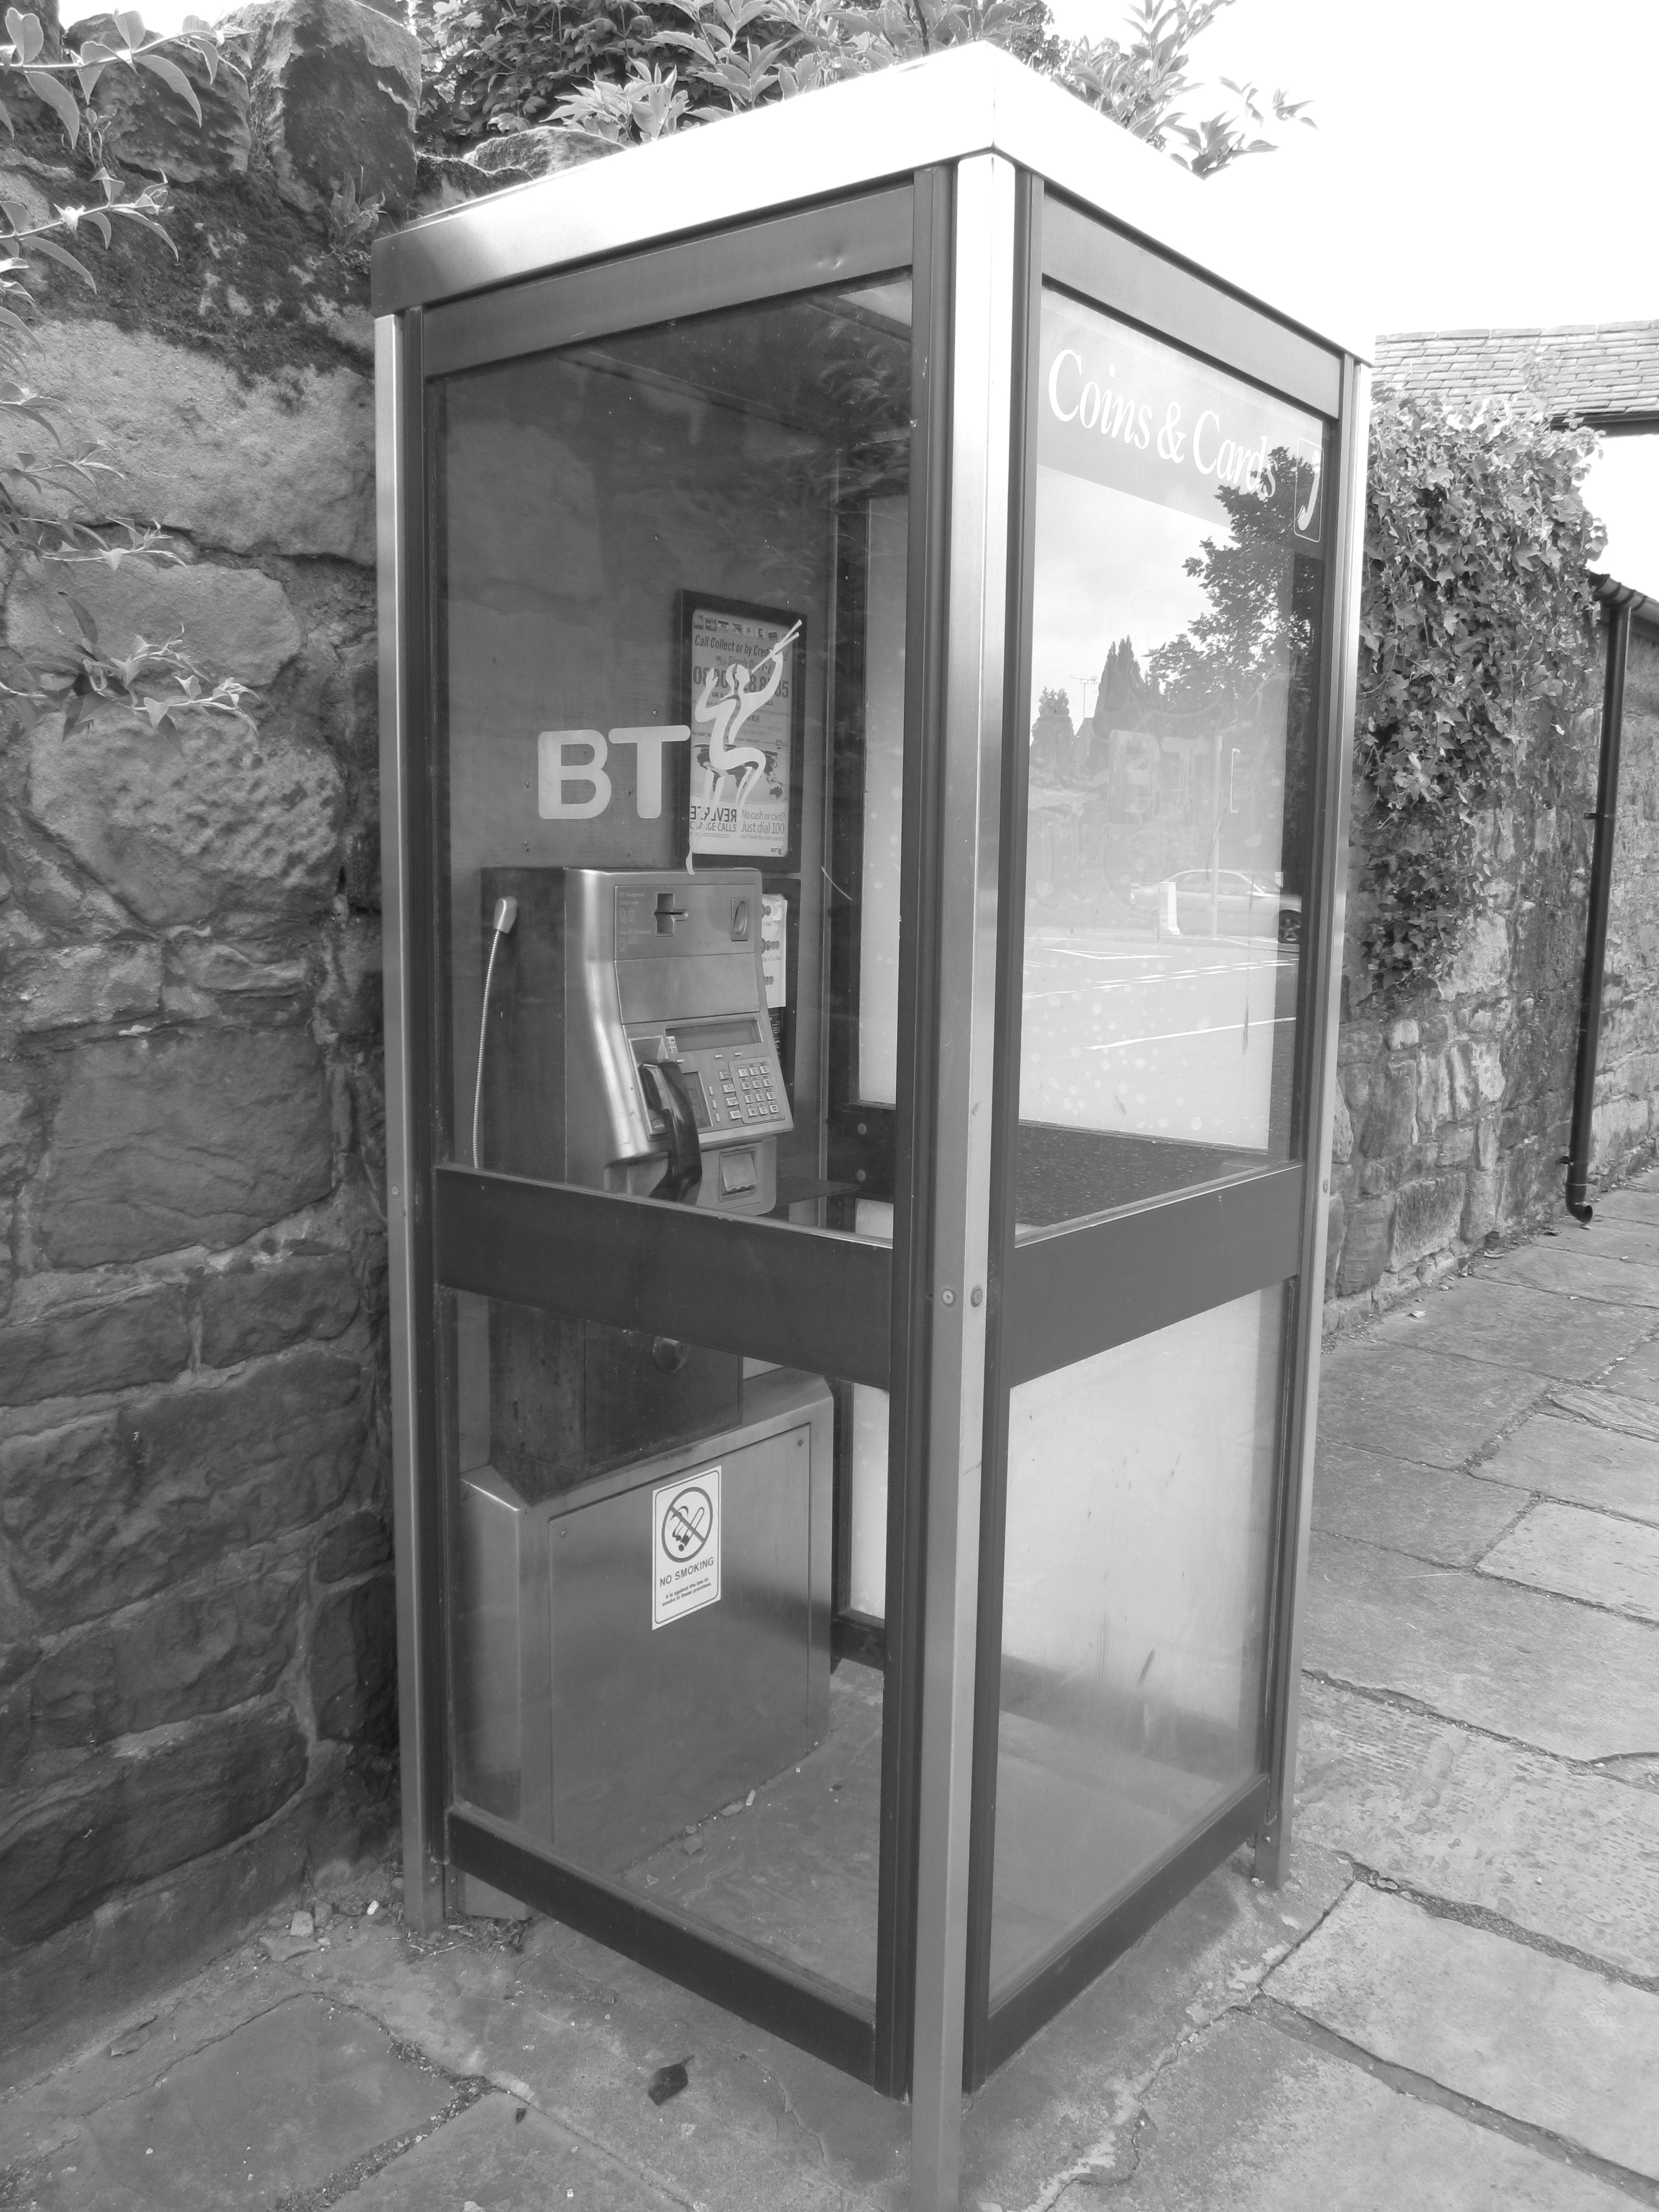 file phone booth gerald road oxton img 1181 jpg wikimedia commons rh commons wikimedia org 4 Wire Phone Jack Wiring Diagram 2-Line Phone Wiring Diagram